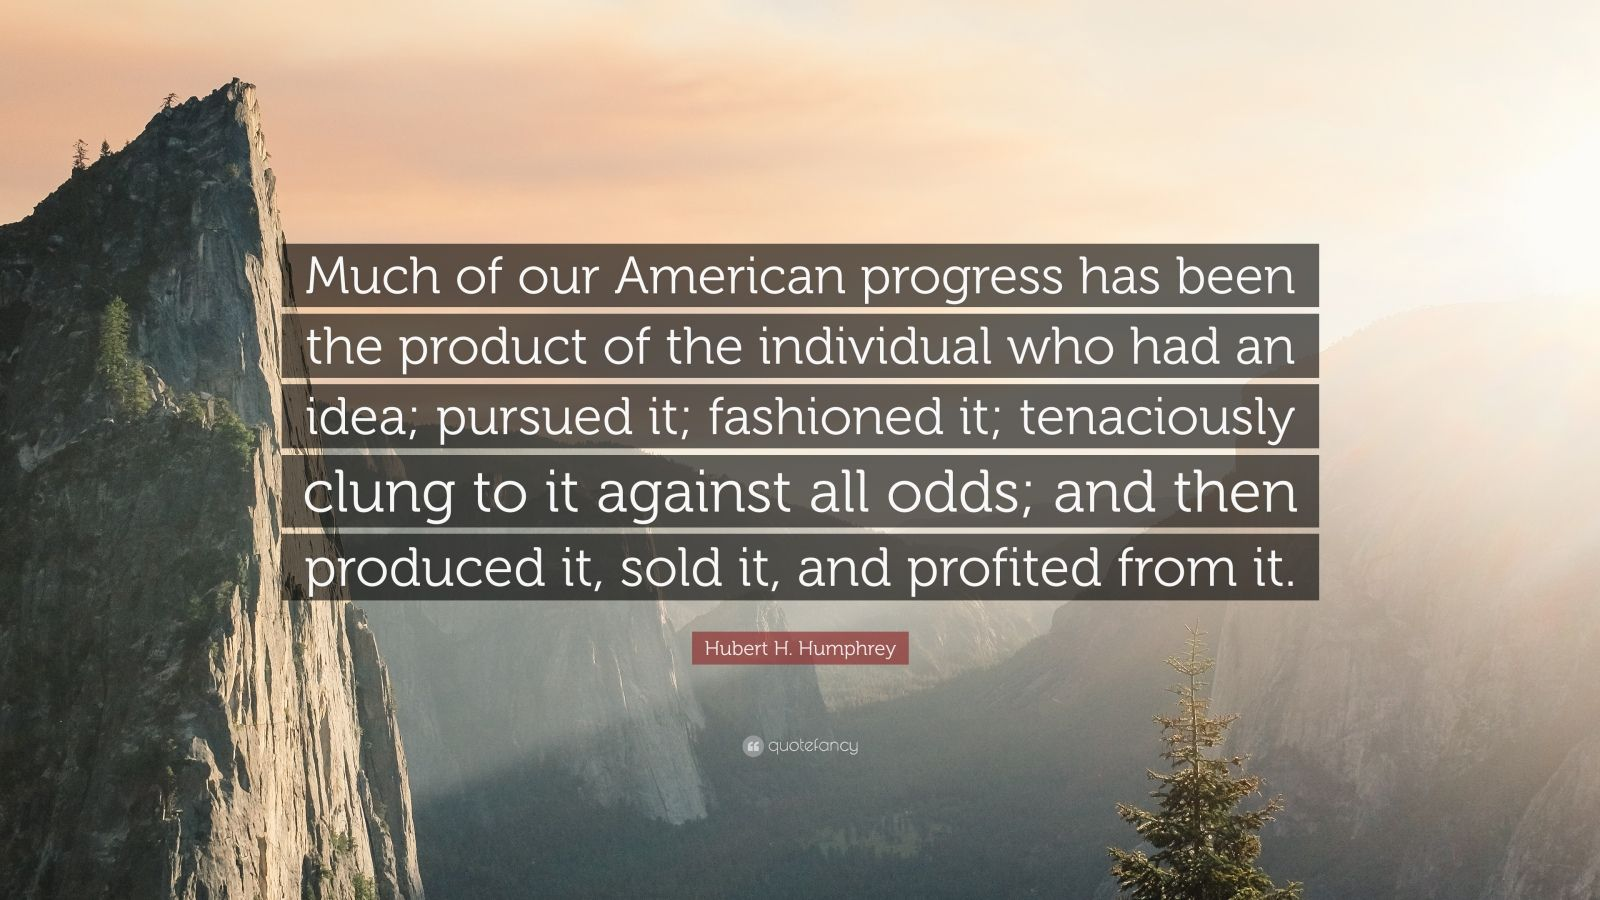 "Hubert H. Humphrey Quote: ""Much of our American progress has been the product of the individual who had an idea; pursued it; fashioned it; tenaciously clung to it against all odds; and then produced it, sold it, and profited from it."""